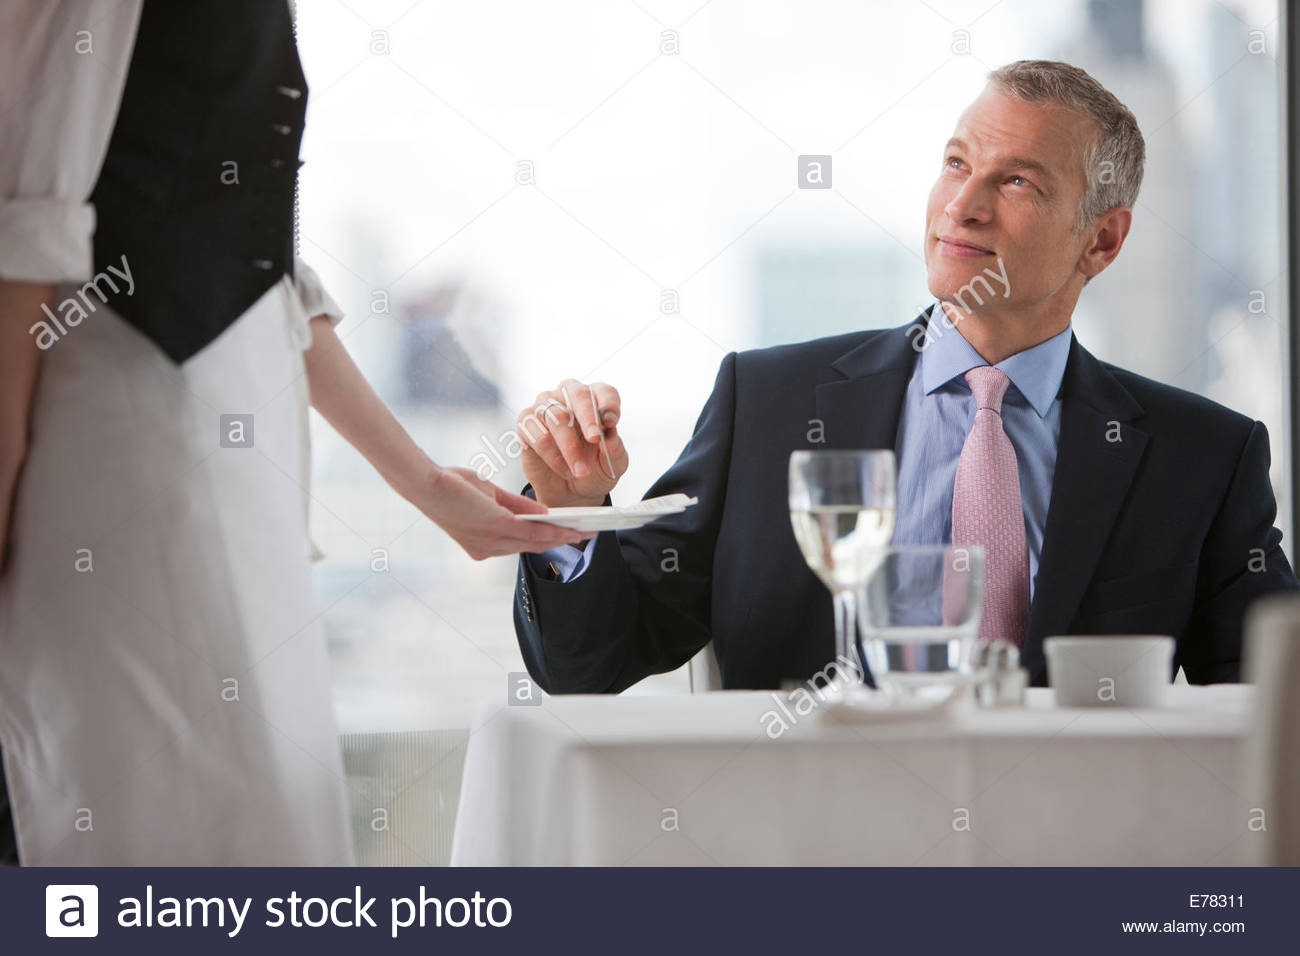 Businessman handing waitress credit card in restaurant - Stock Image